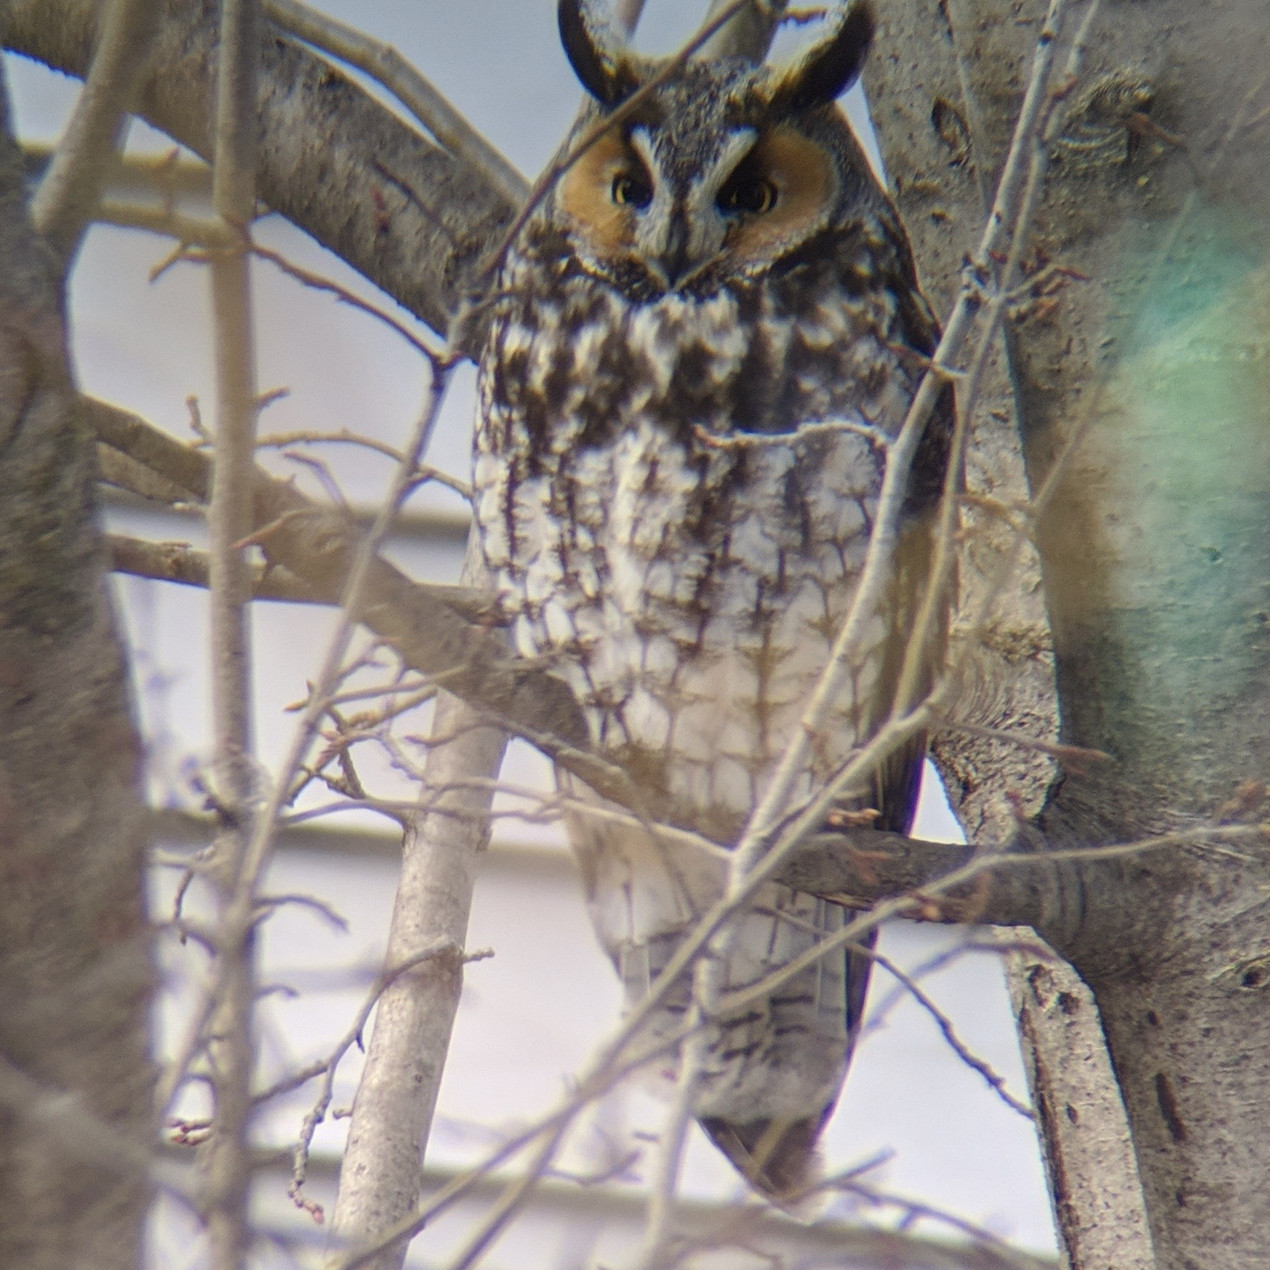 Long-eared Owl in a relatively relaxed posture